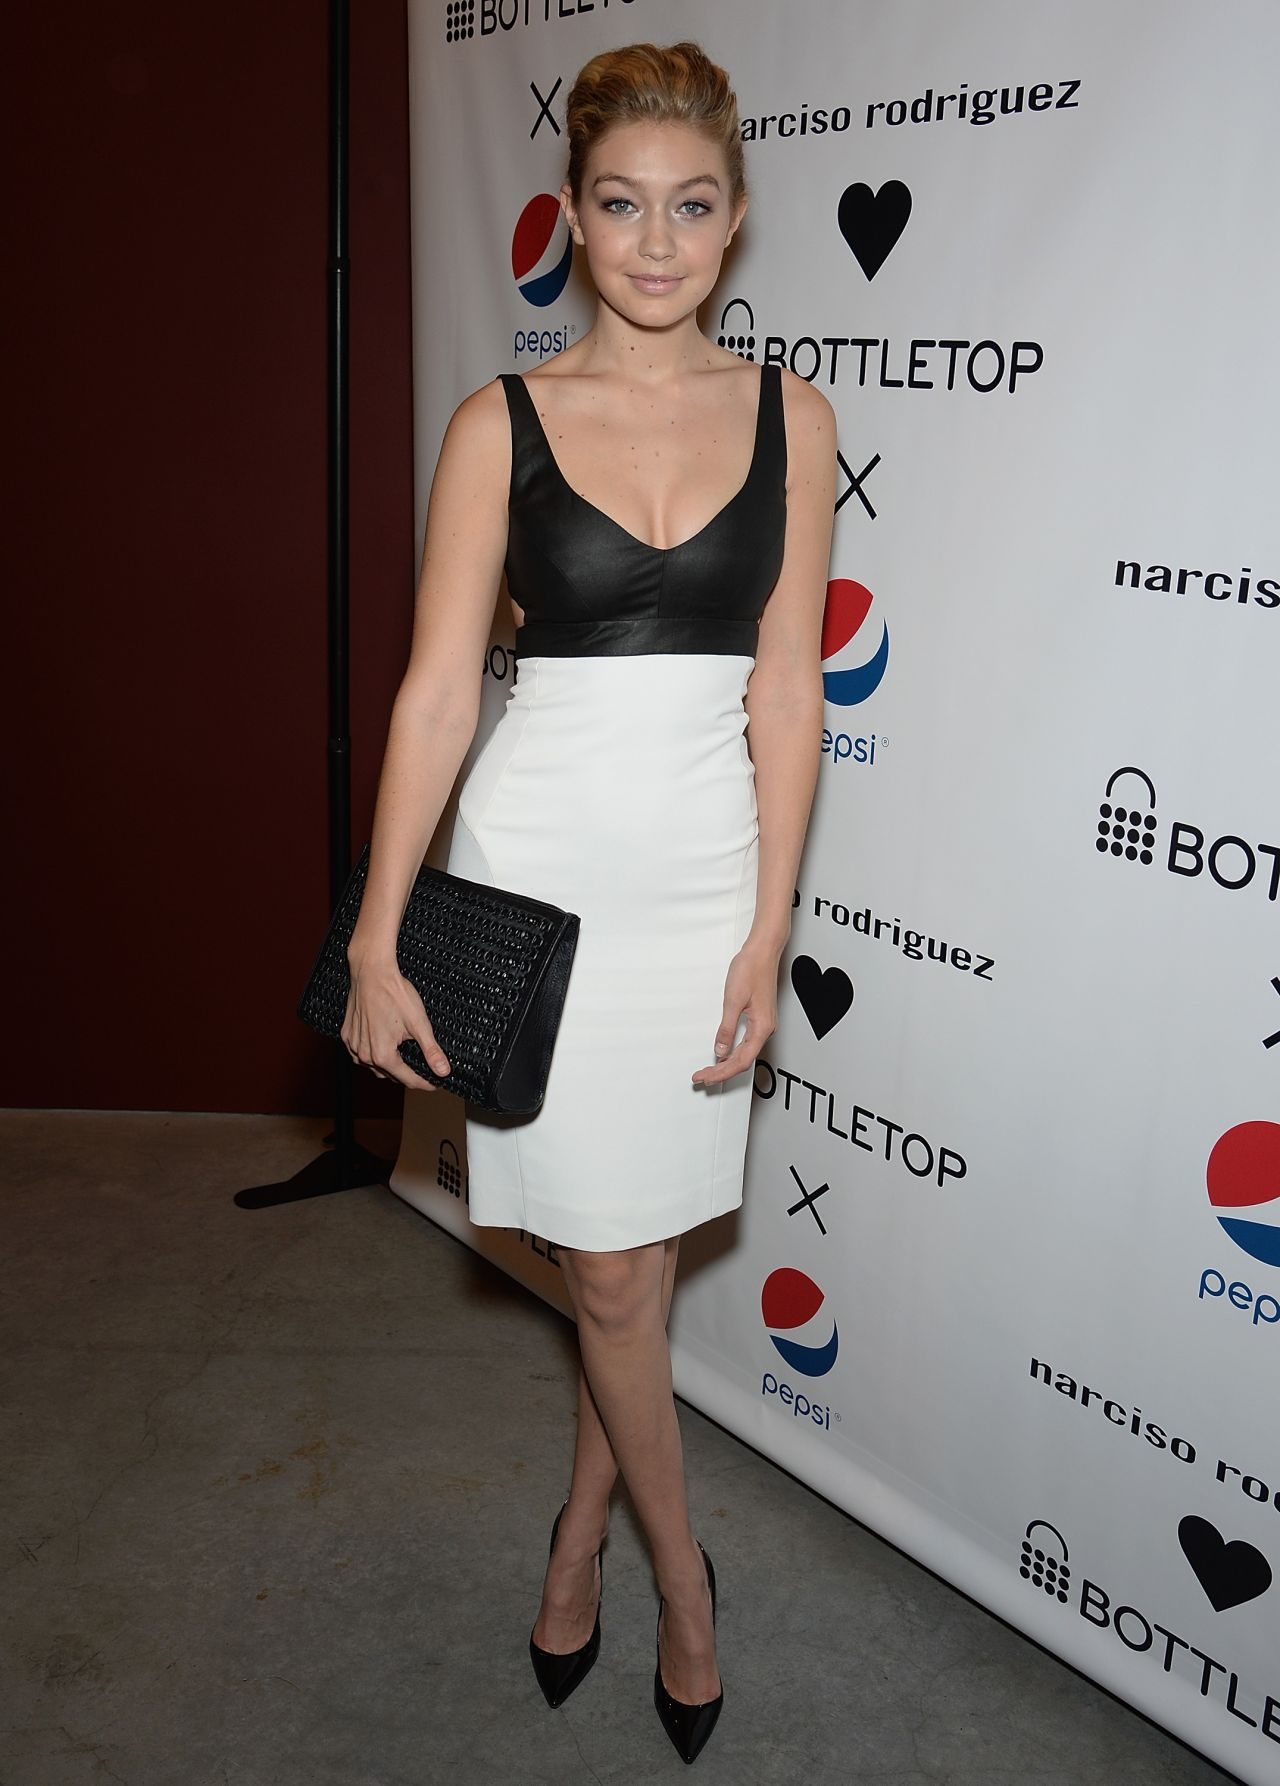 Gigi Hadid – Narciso Rodriguez Bottletop Collection Pepsi Launch - May 2014